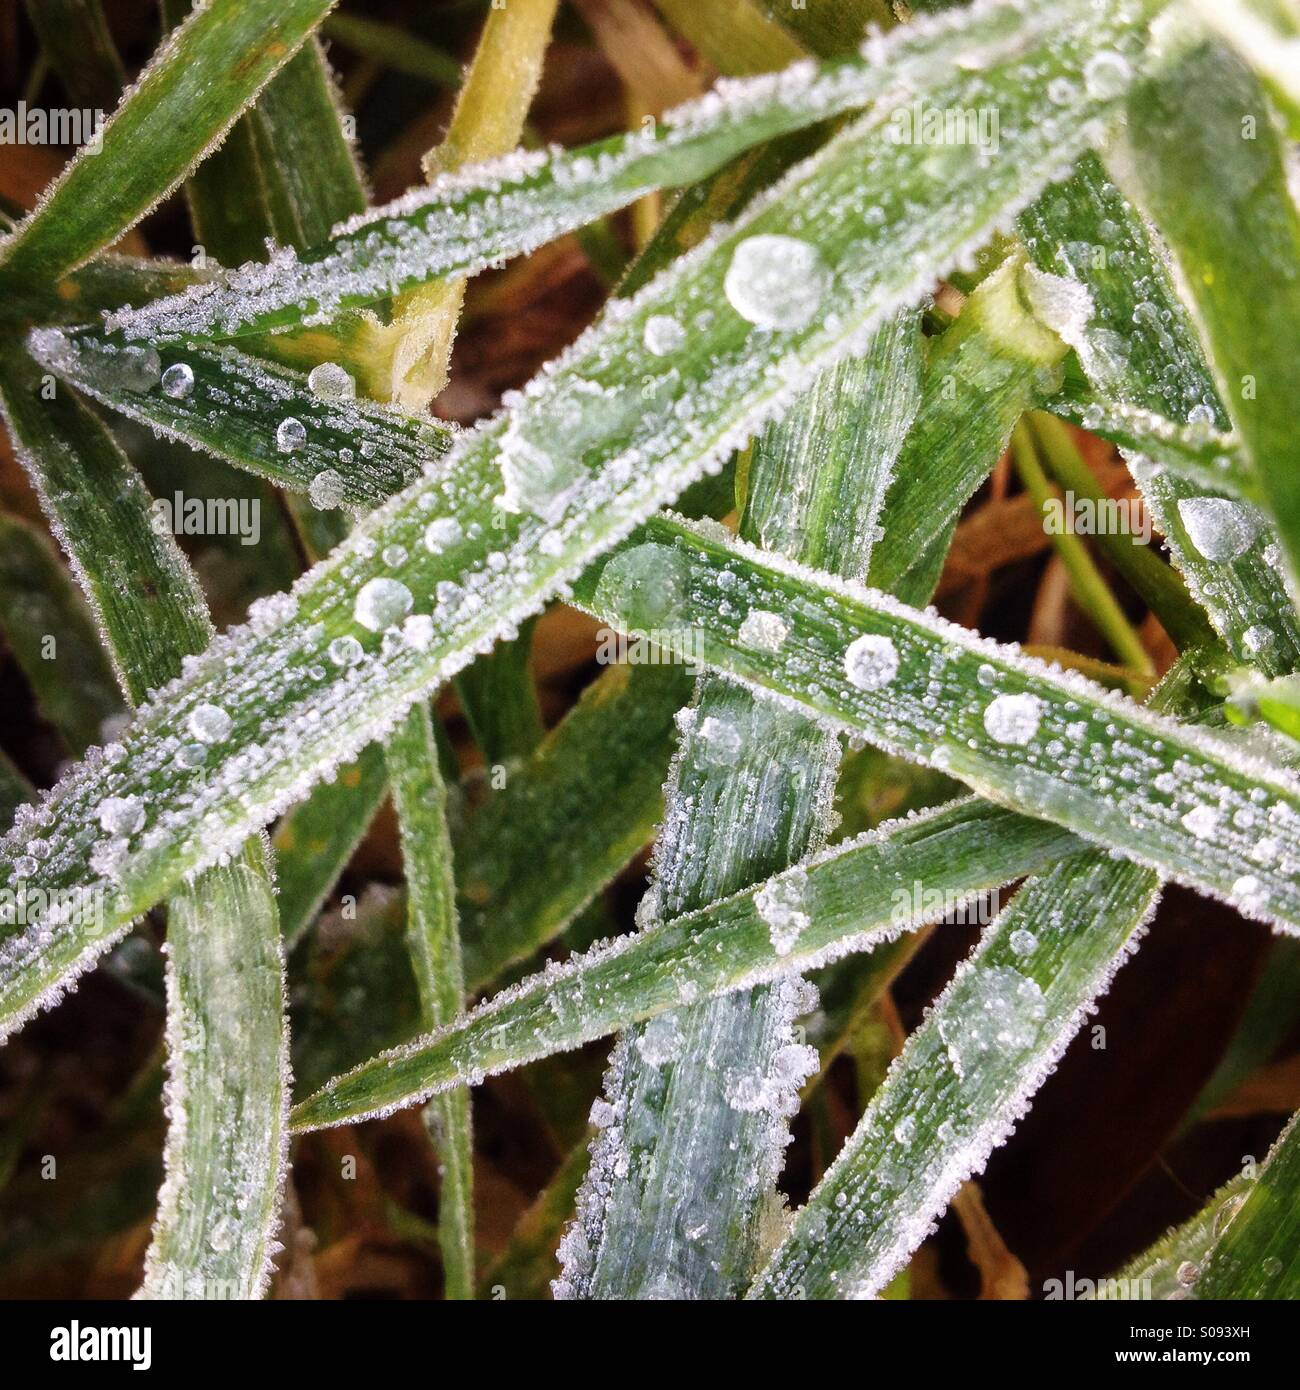 Close-up of ice on blades of grass - Stock Image